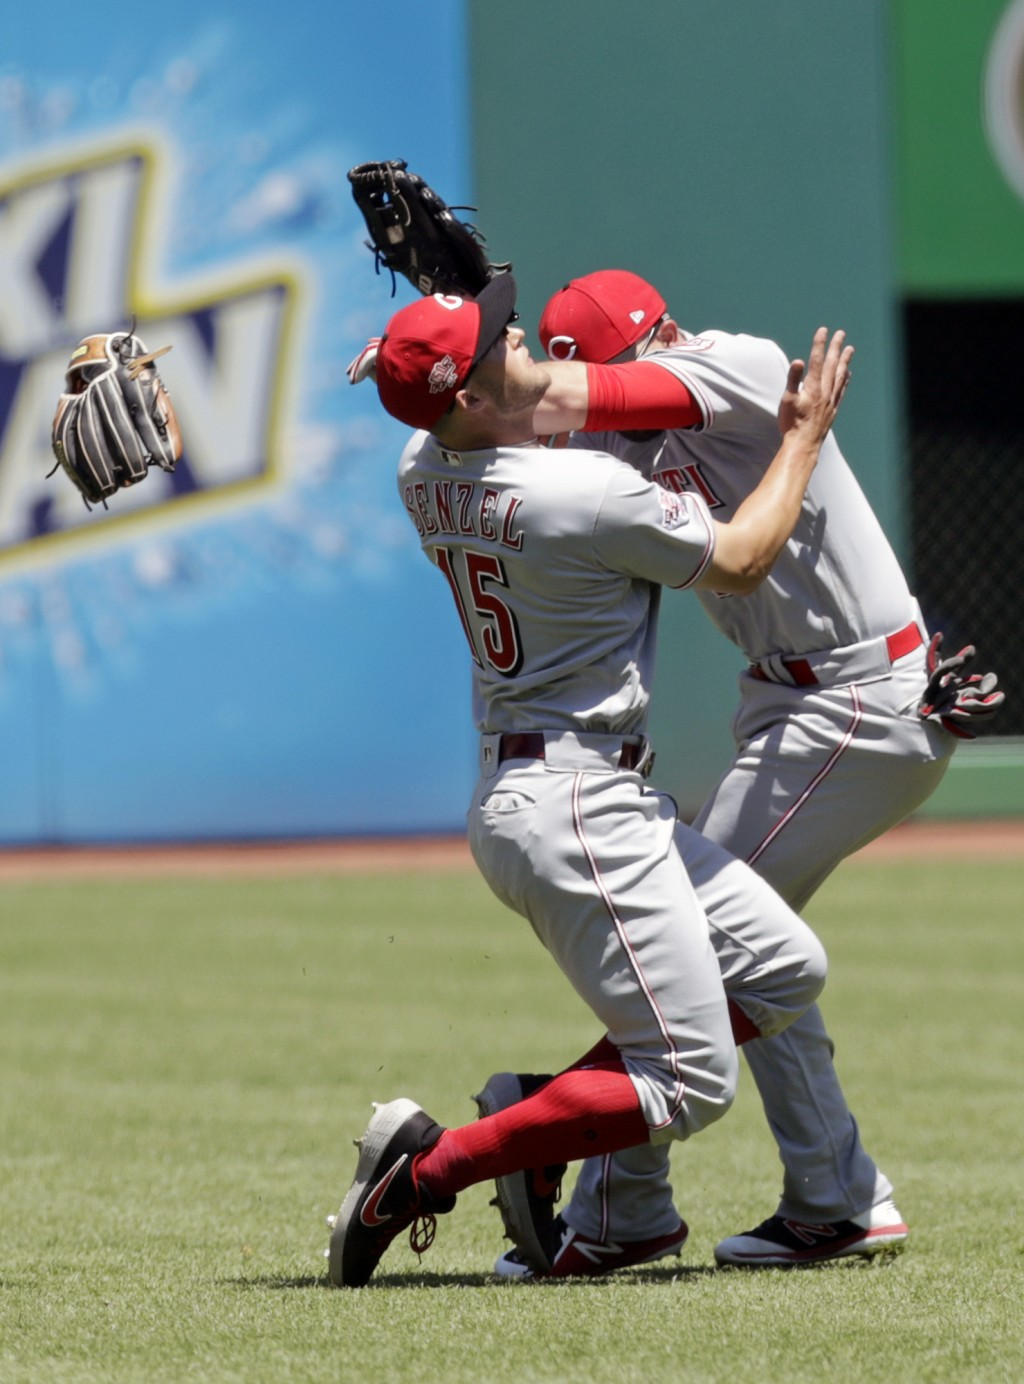 Cincinnati Reds' Nick Senzel, left, and Jose Peraza collide going after a ball hit by Cleveland Indians' Francisco Lindor in the first inning in a bas...